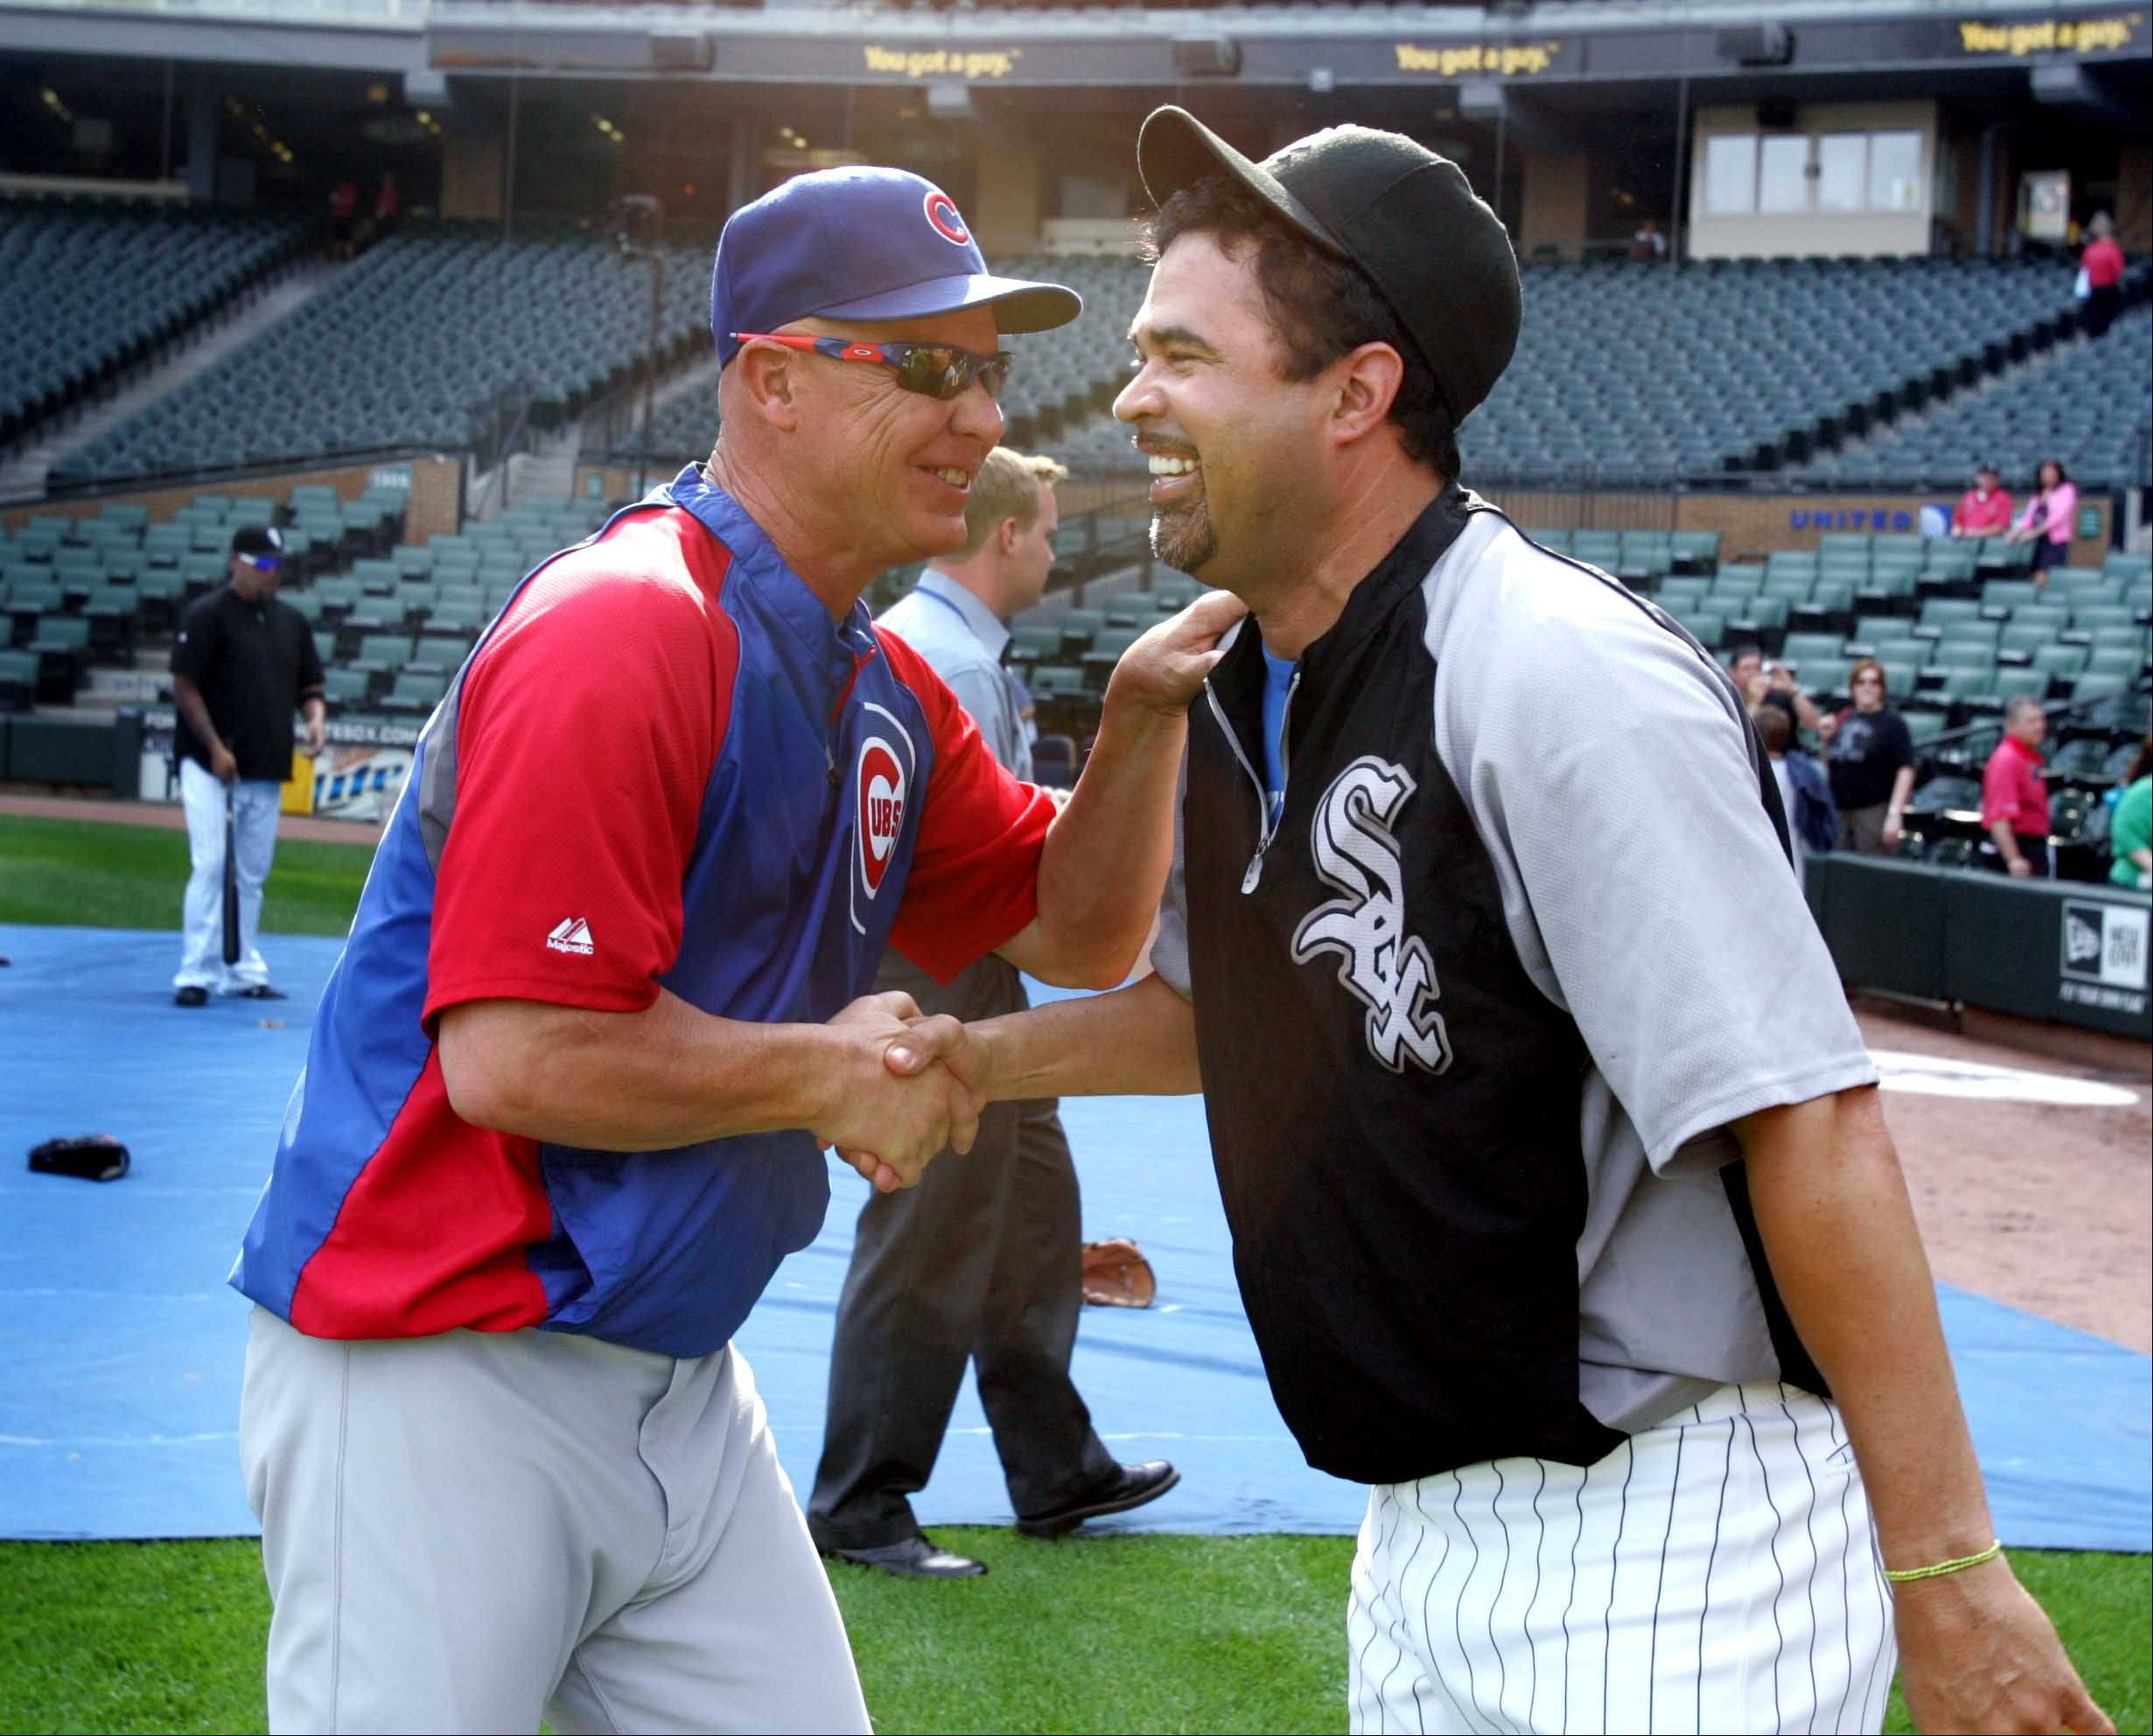 Chicago Cubs manager Mike Quade, left, greets Chicago White Sox manager Ozzie Guillen before the Crosstown Classic Monday at U.S. Cellular Field.